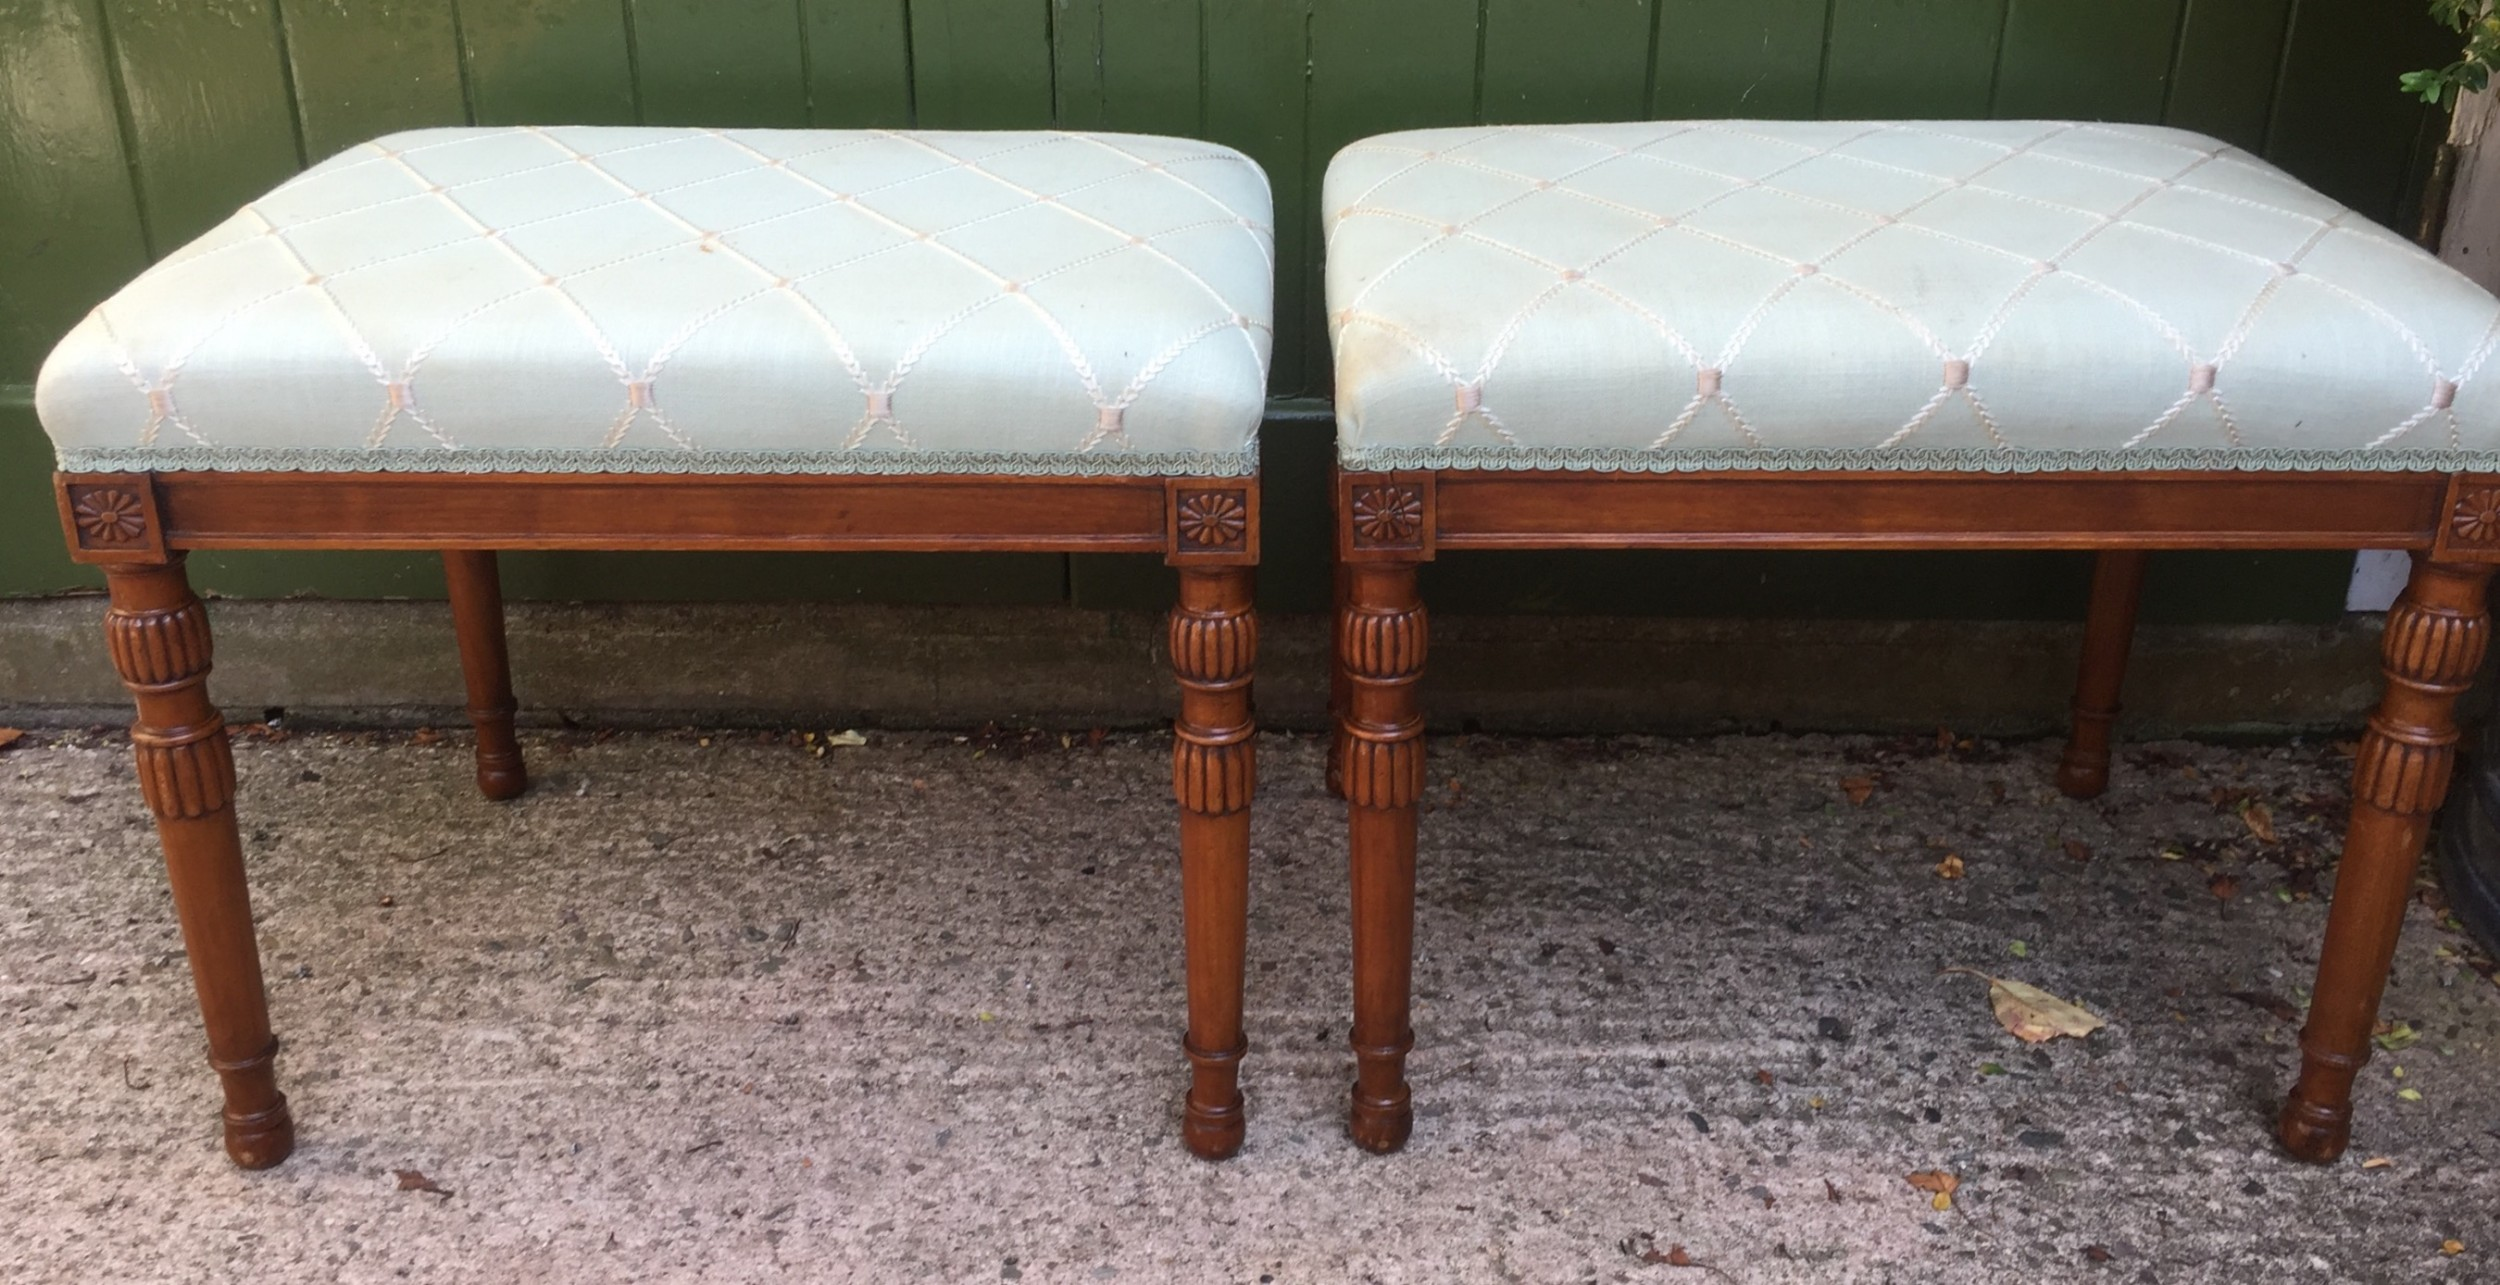 pair of late c19th early c20th edwardian period sheratonrevival carved satinwood frame stools